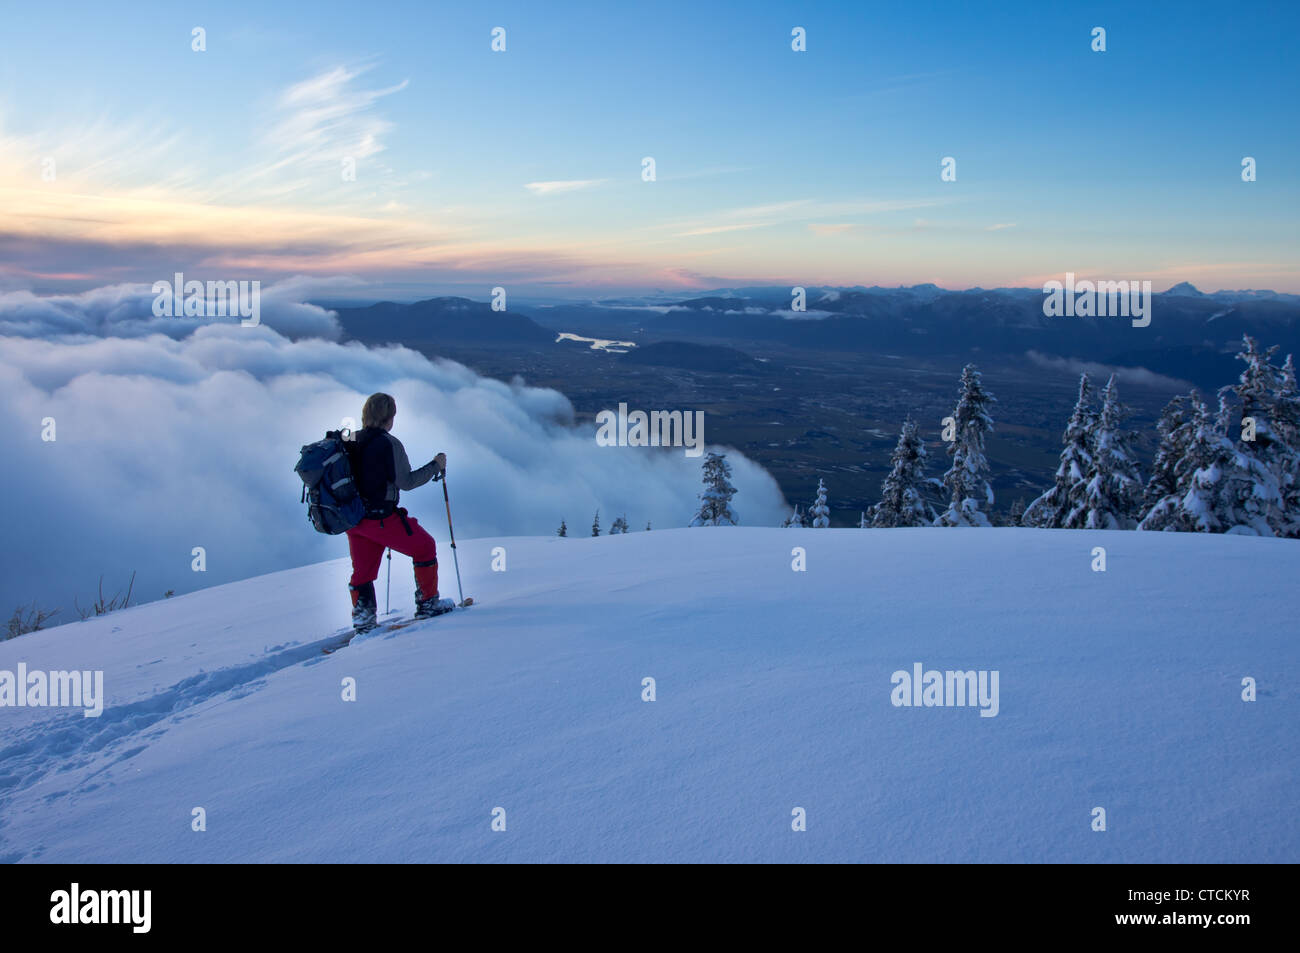 A male snowshoer pauses at a viewpoint to view the scenery below. - Stock Image